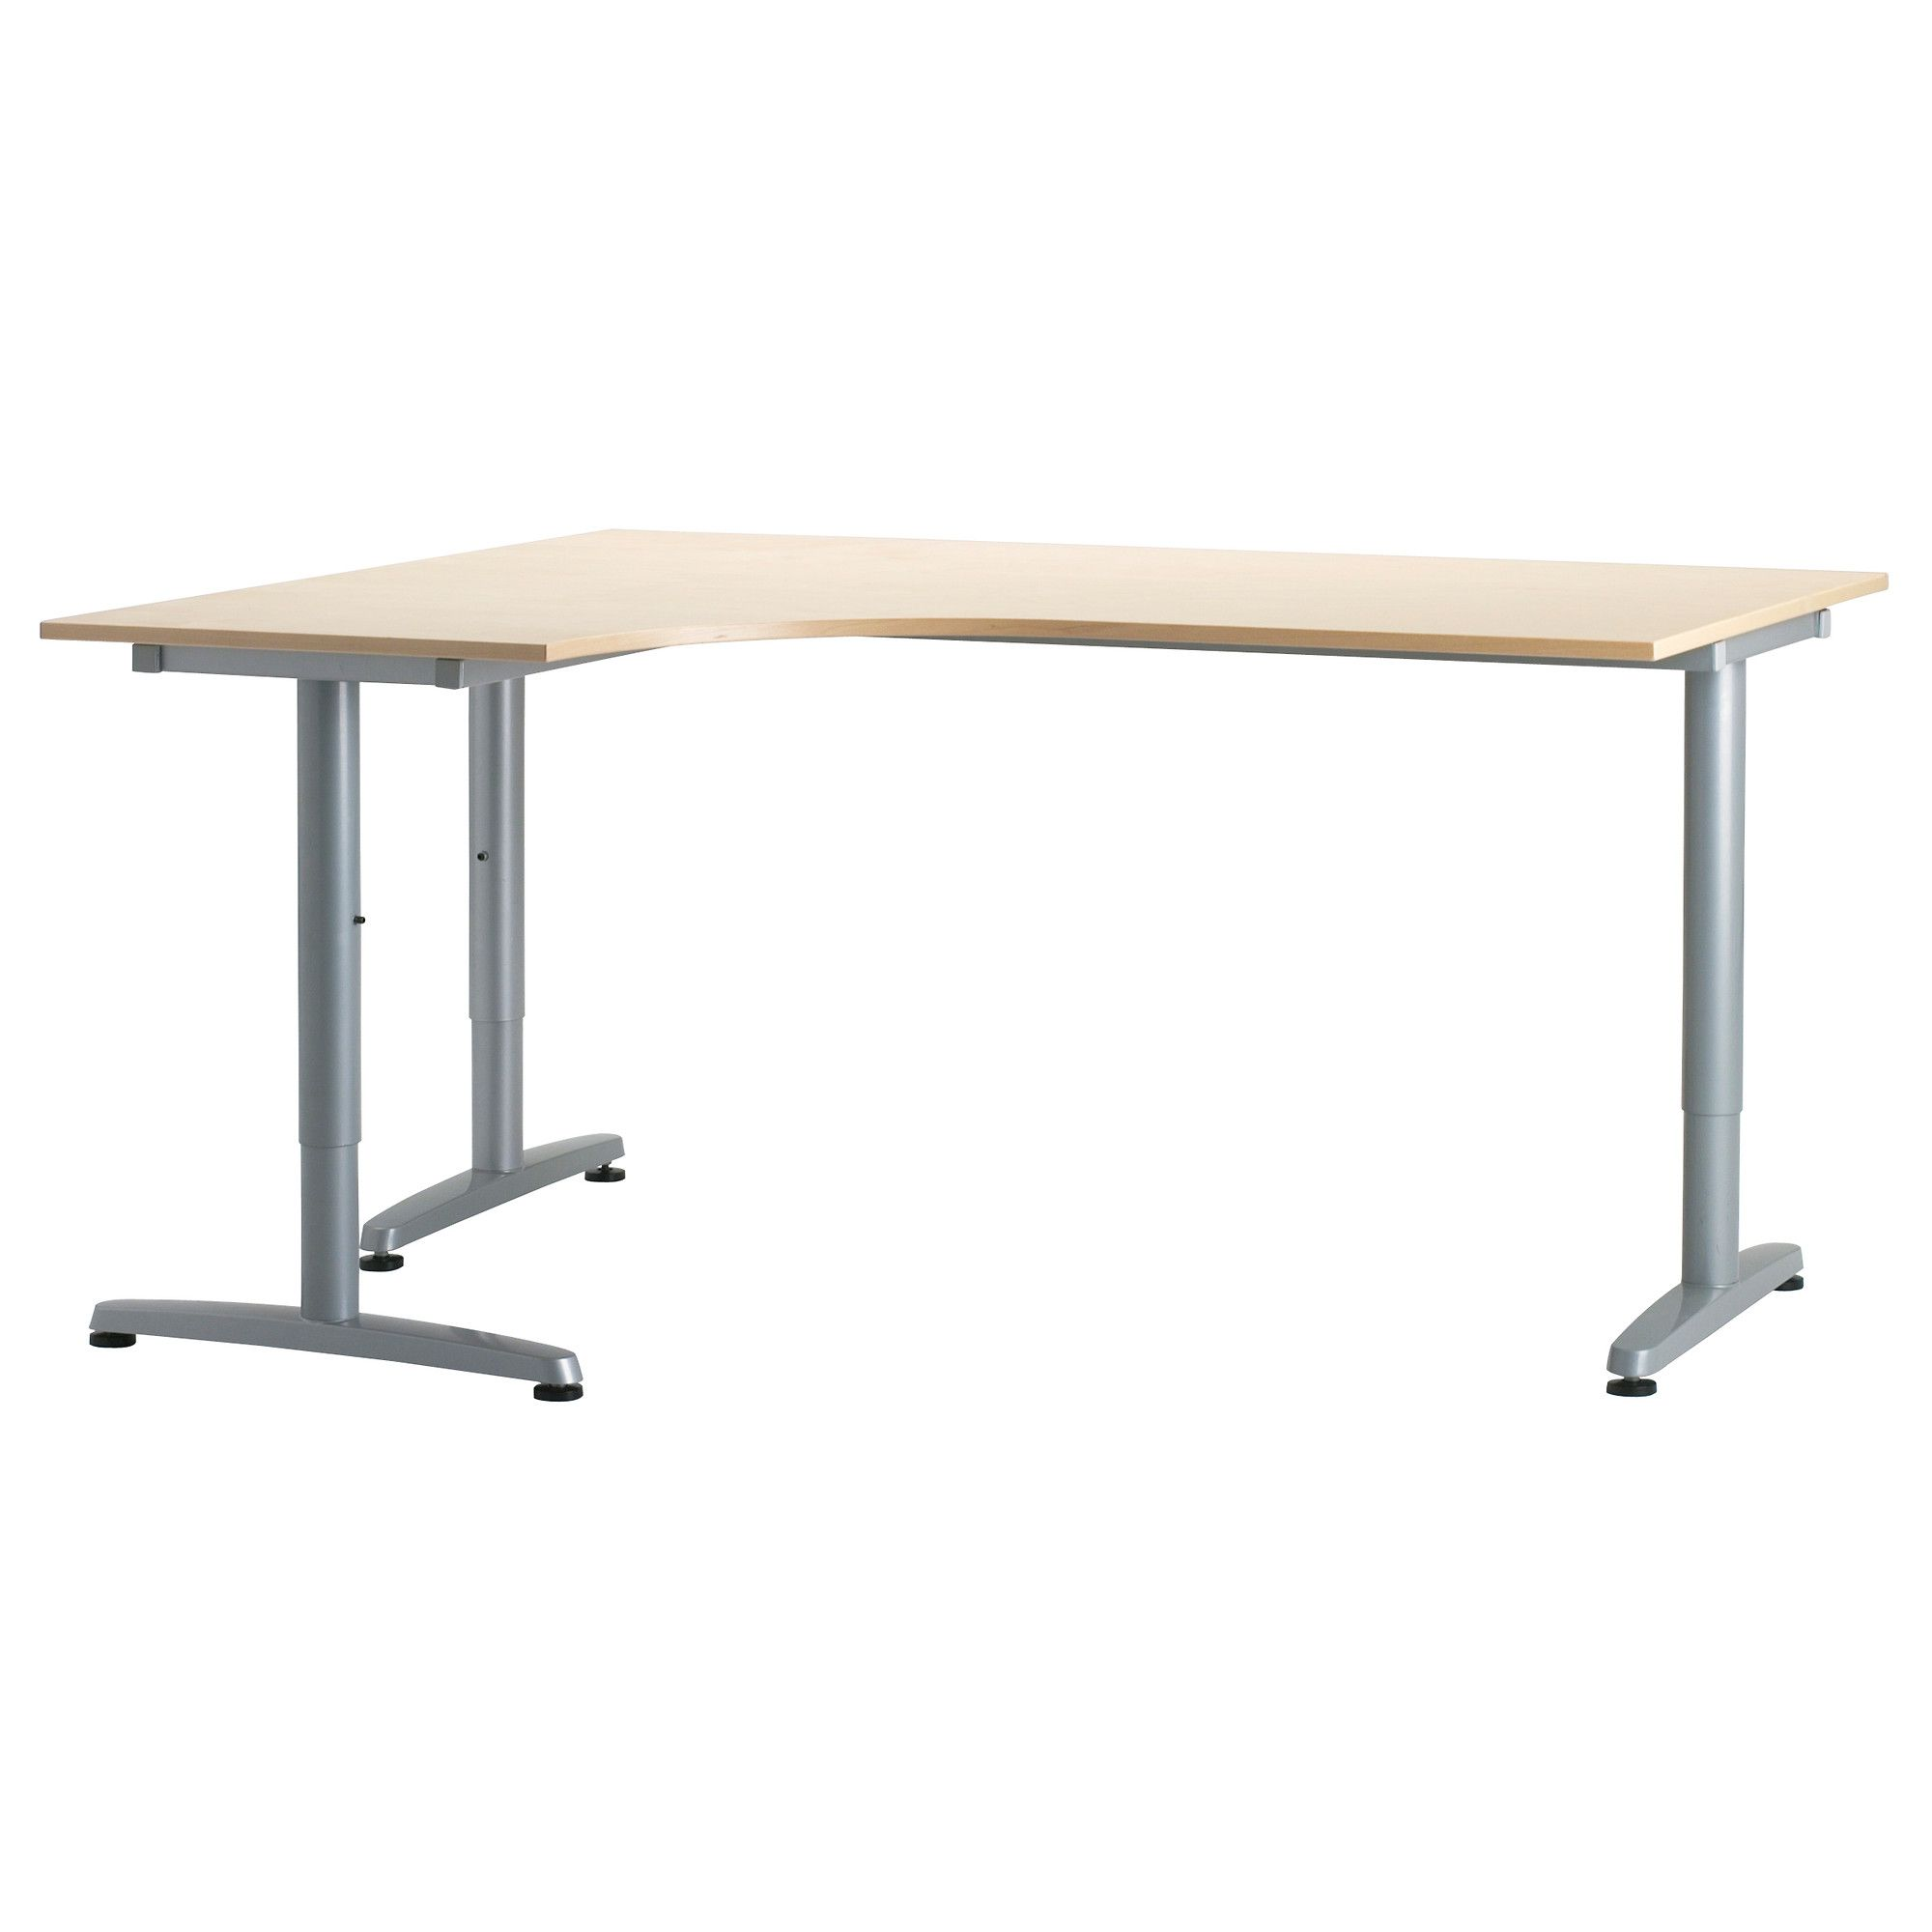 Ikea Kitchen Desk: GALANT Corner Desk-left